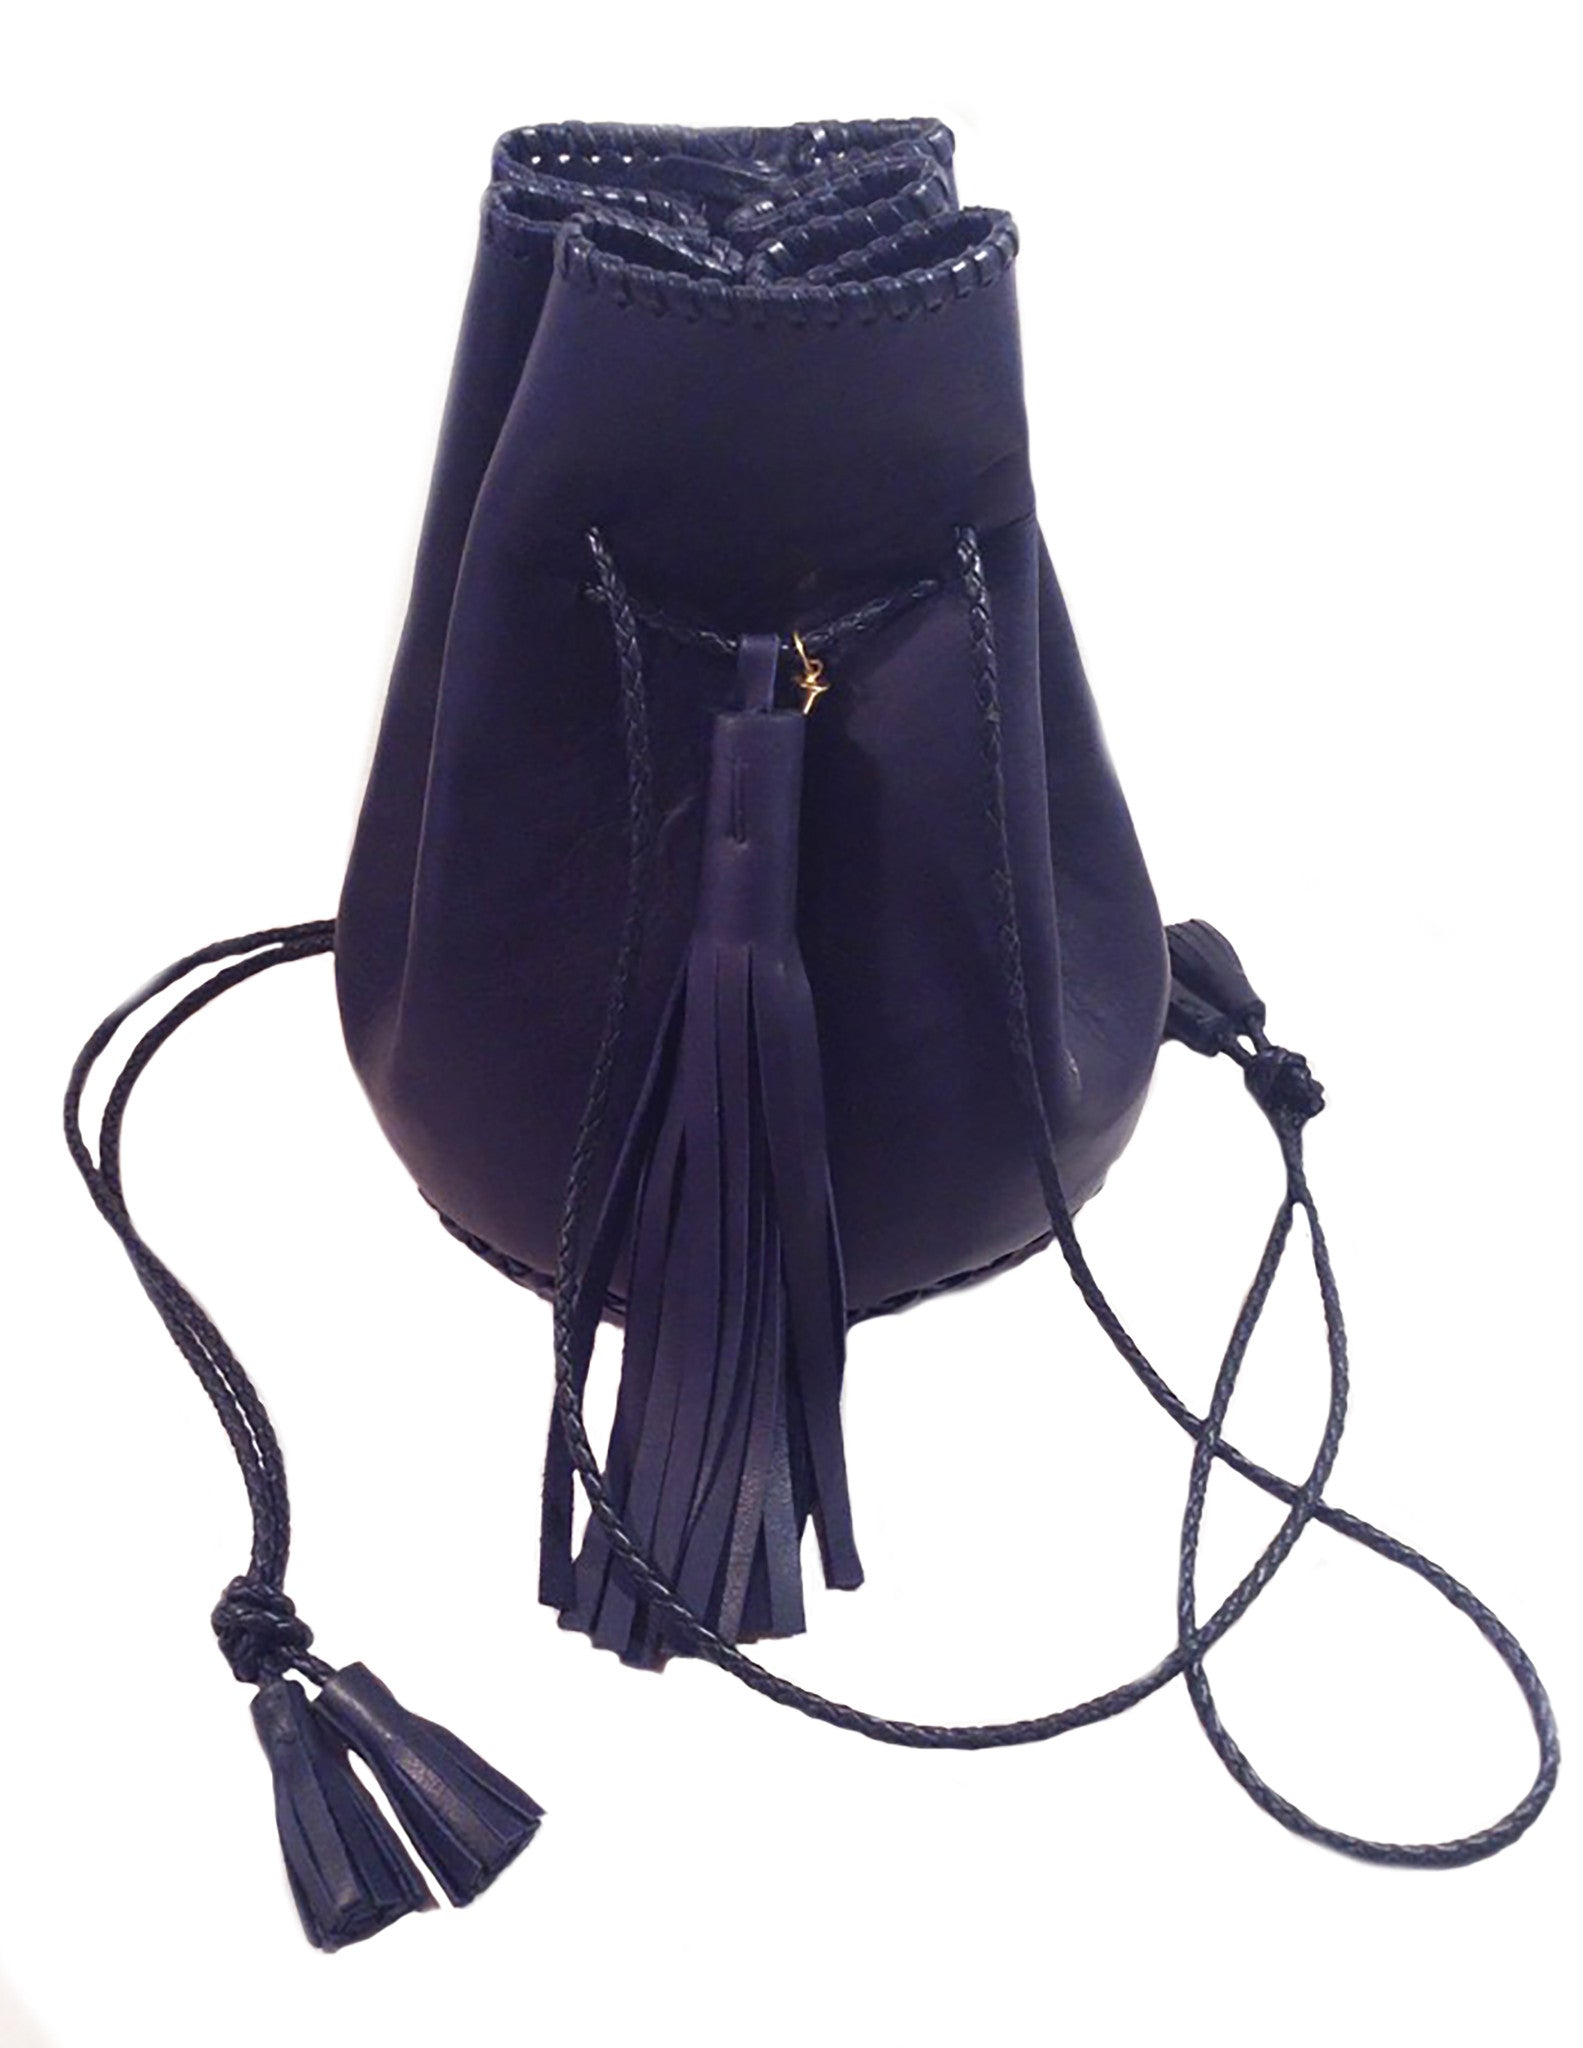 Eco Navy Dark Blue Whipstitch Bullet Bag Wendy Nichol Leather Handbag Designer Bucket Bag